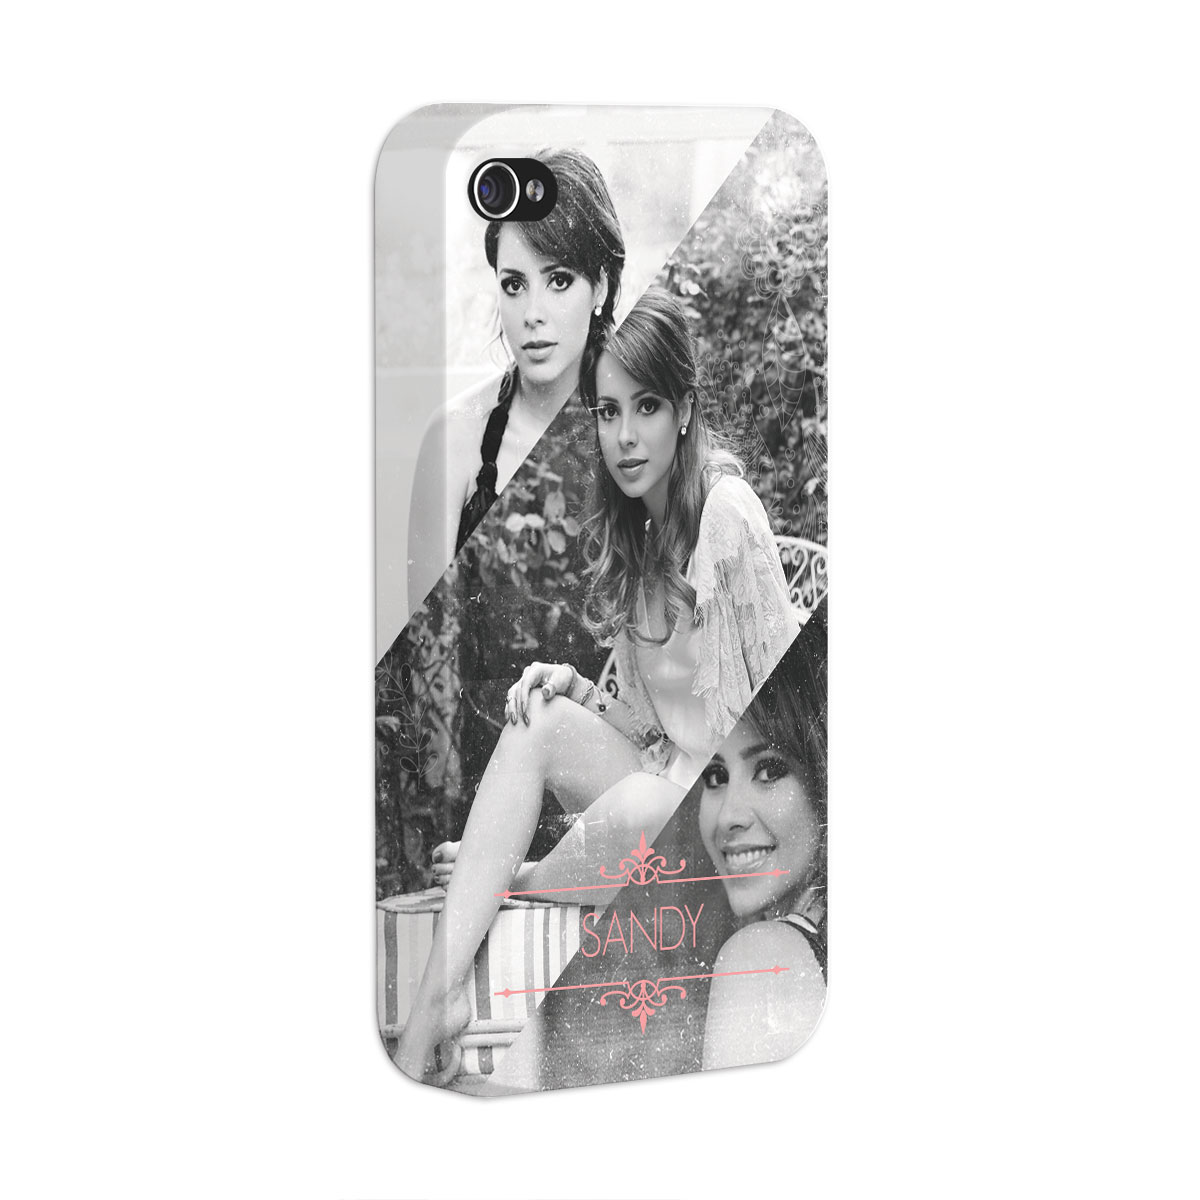 Capa para iPhone 4/4S Sandy Pictures